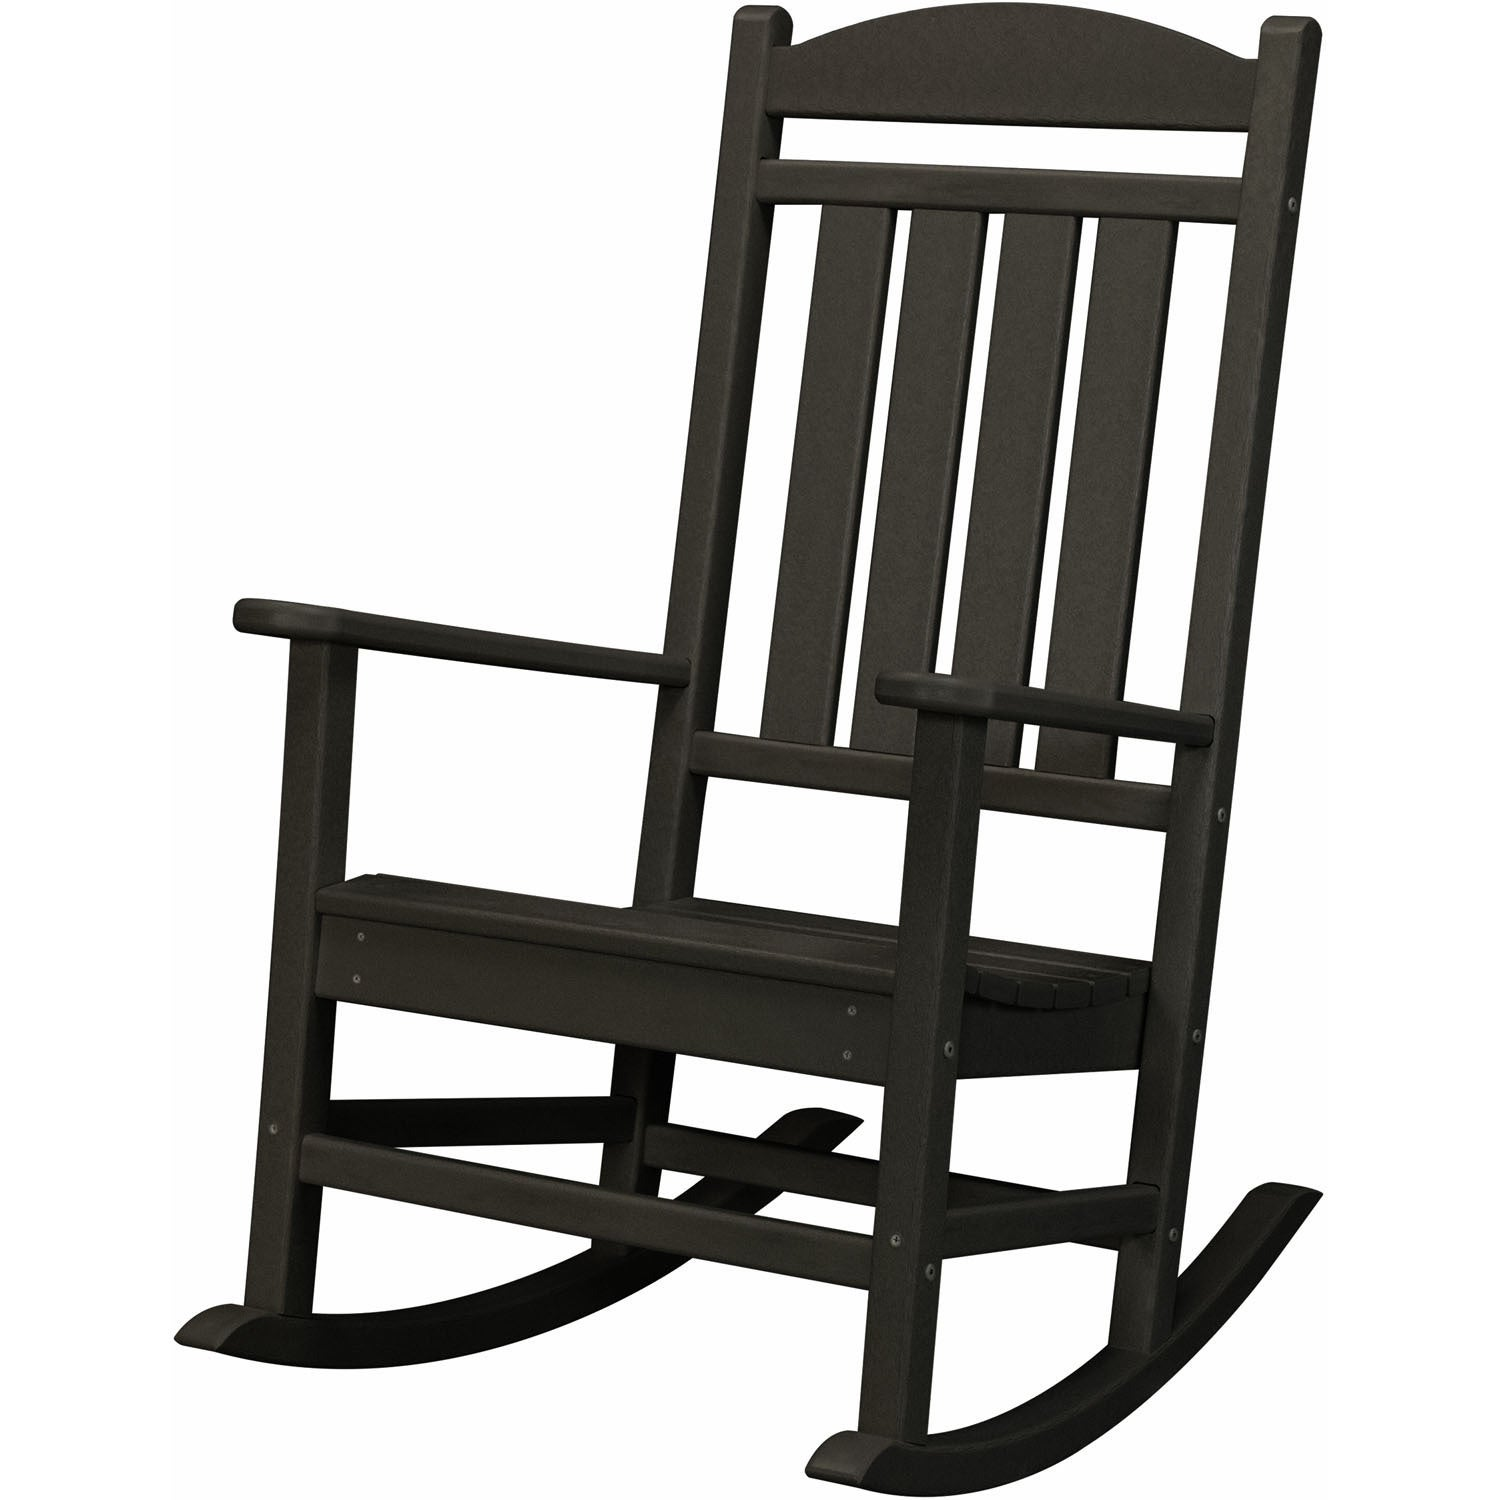 Hanover Pineapple Cay Black Outdoor All-weather Porch Roc...